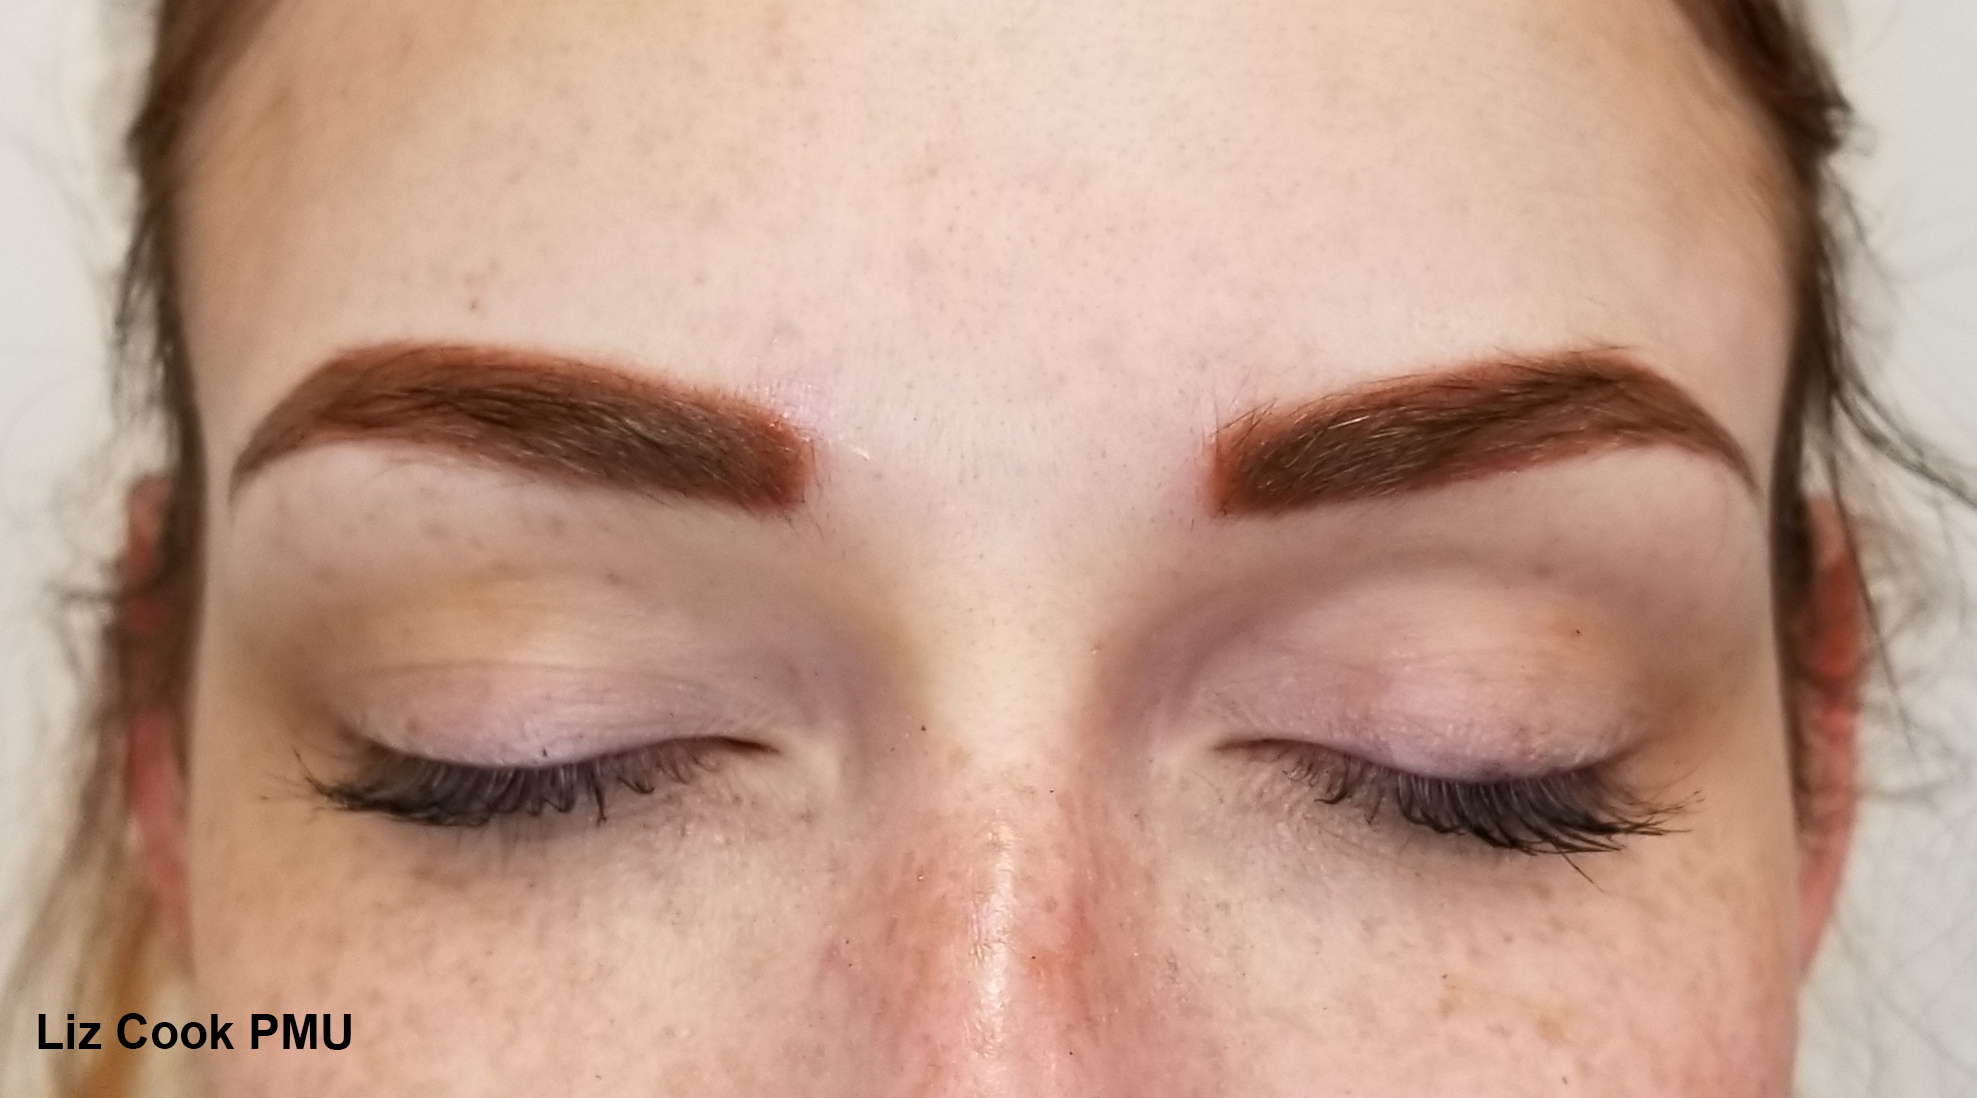 Liz Cook PMU EM Dark Strawberry Blonde Brows Dallas TX Permanent Cosmetics.jpg